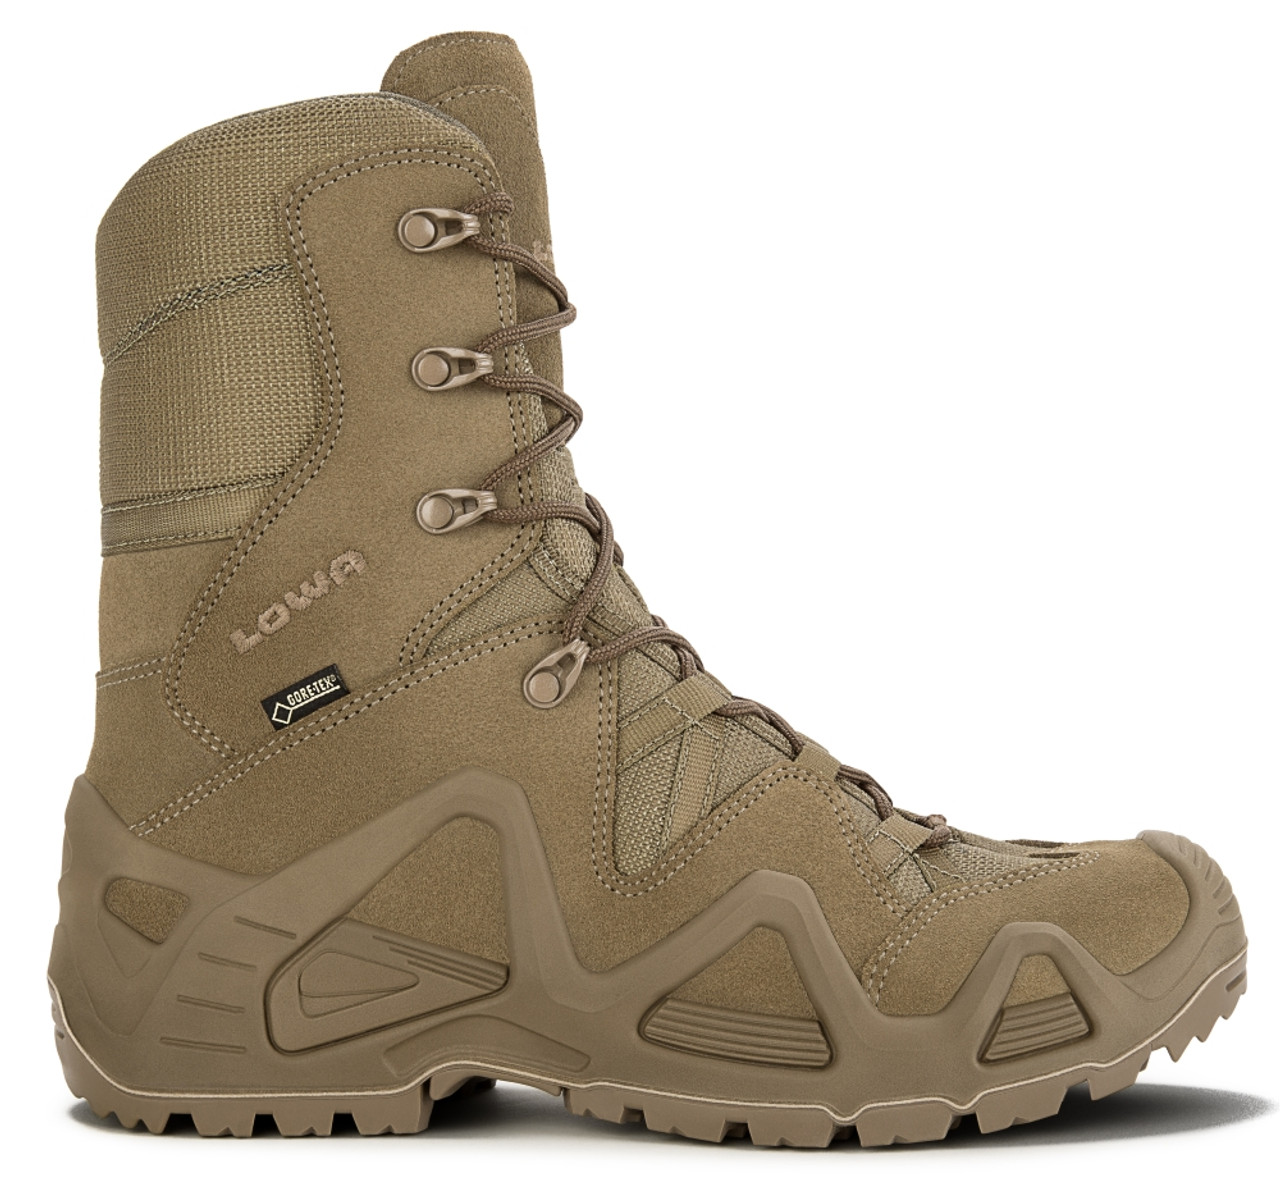 99748068b39 Lowa Zephyr GTX HI TF Tactical Boots - Herbert's Boots and Western Wear